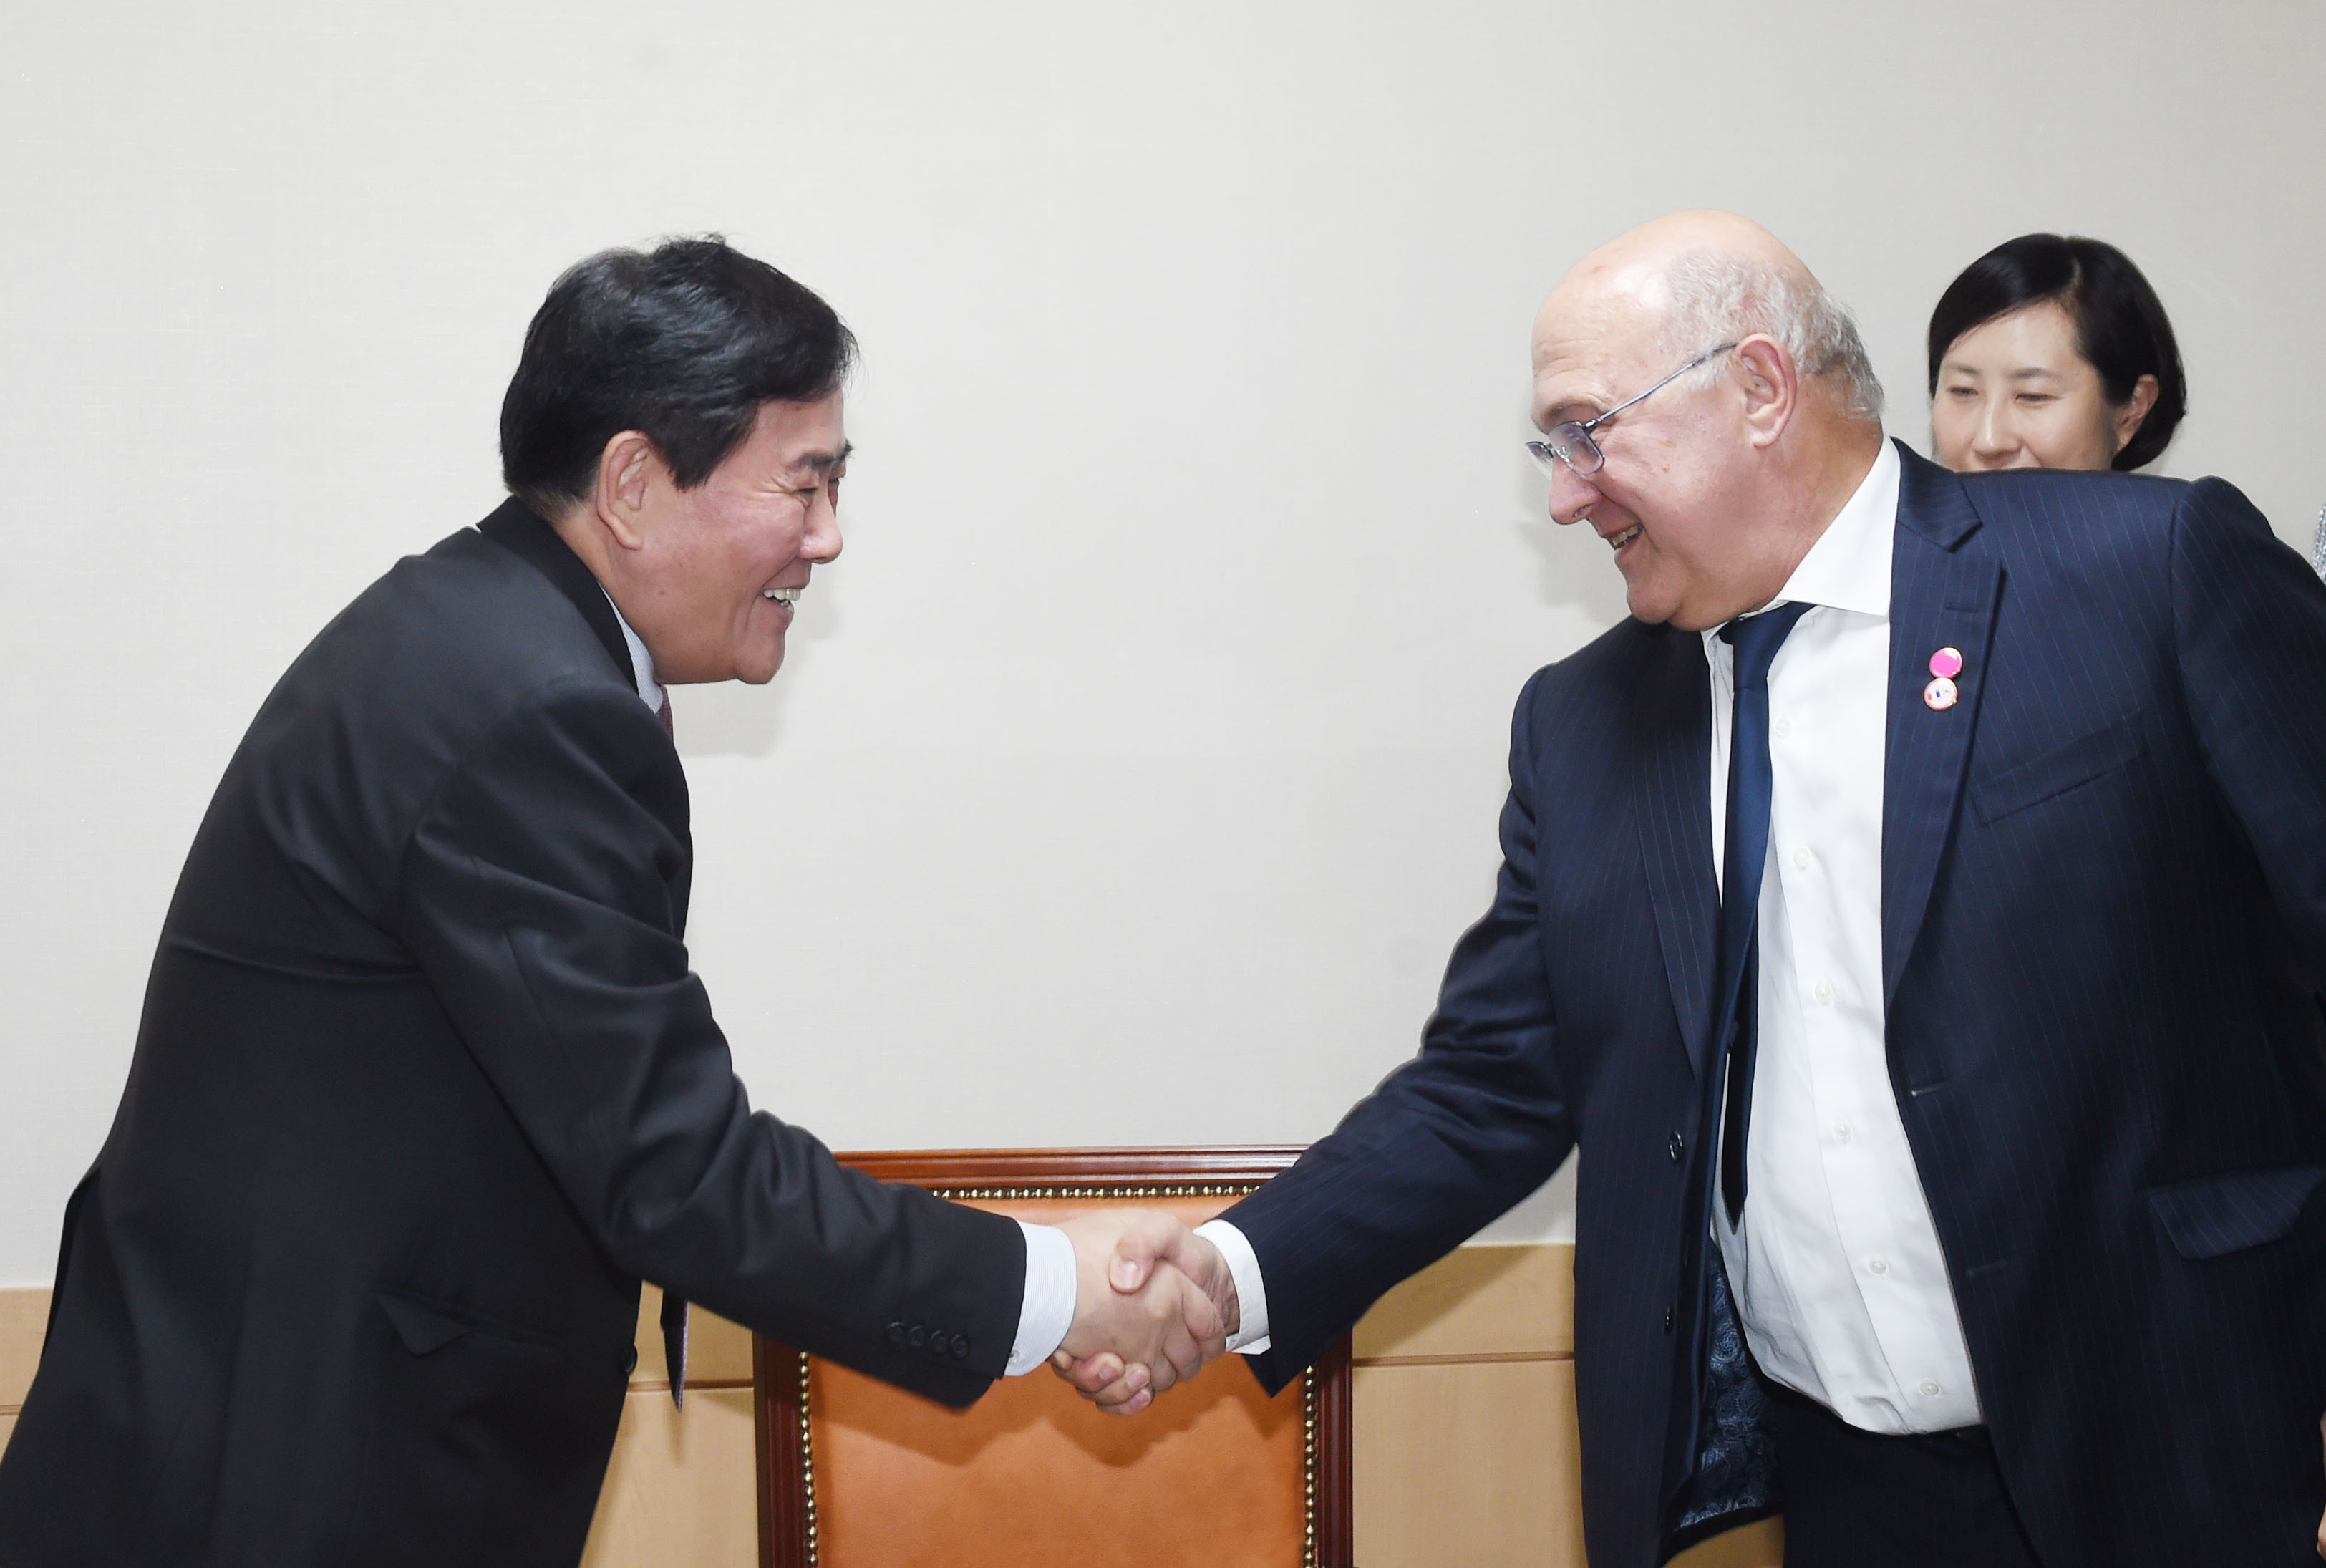 Deputy Prime Minister Choi meets with French Finance Minister Michel Sapin